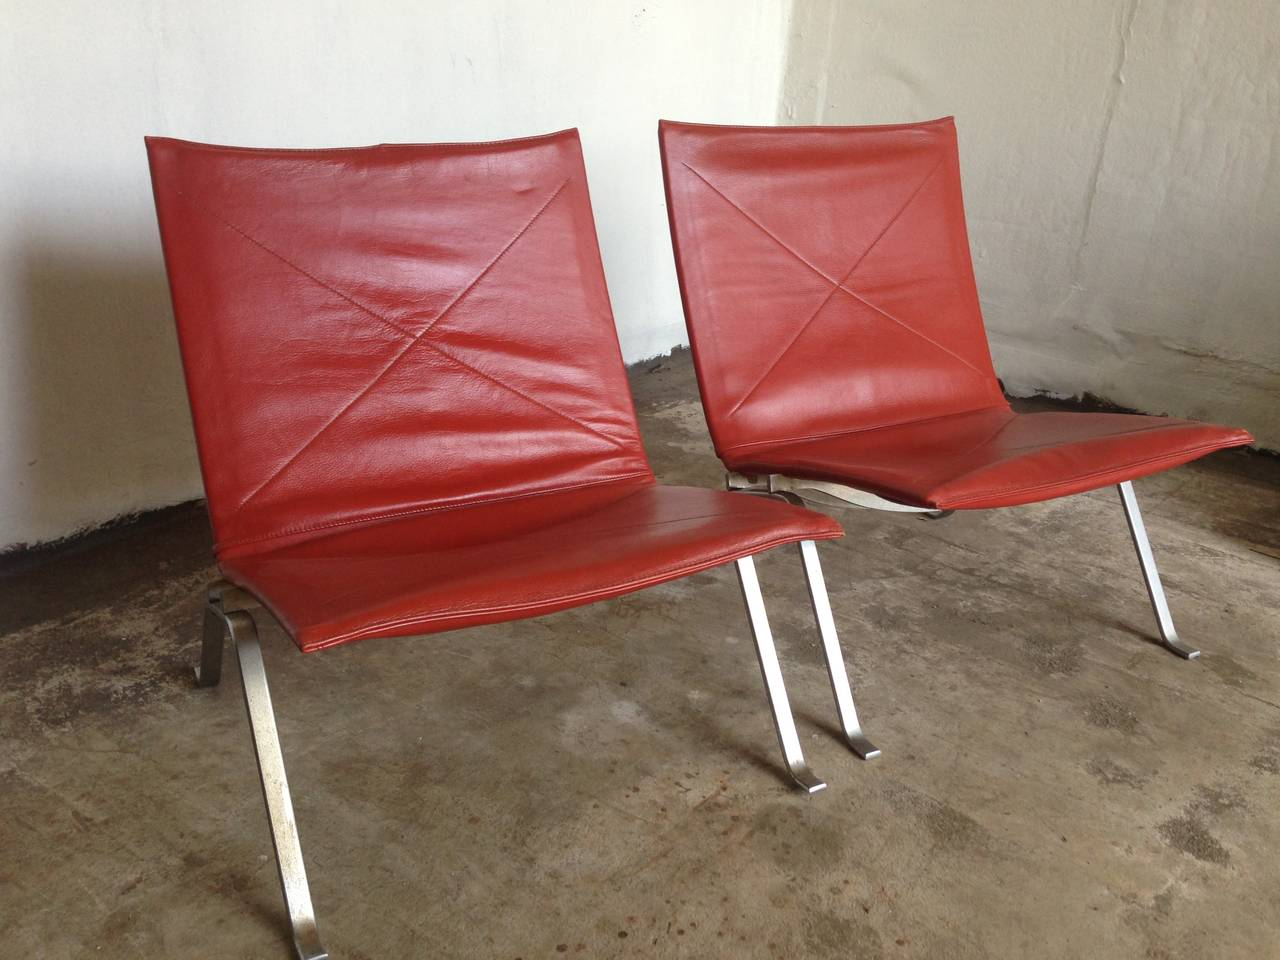 Two Poul Kjaerholm Leather Chairs First Editon Kold Christensen For Sale At 1stdibs